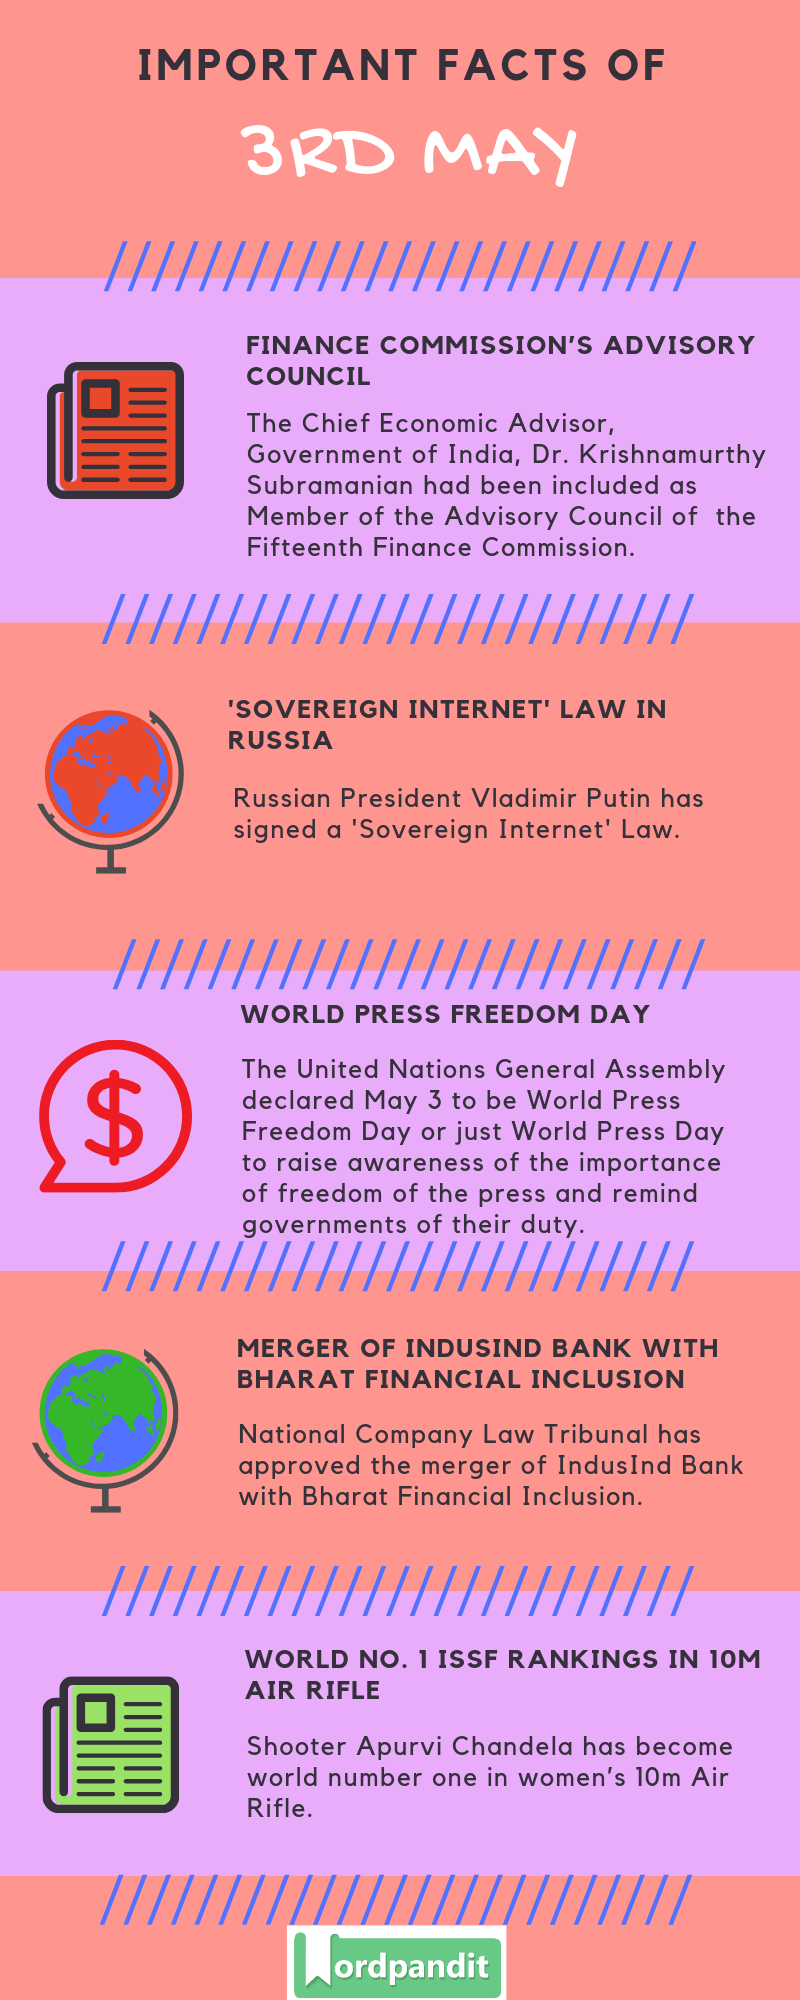 Daily Current Affairs 3 May 2019 Current Affairs Quiz 3 May 2019 Current Affairs Infographic